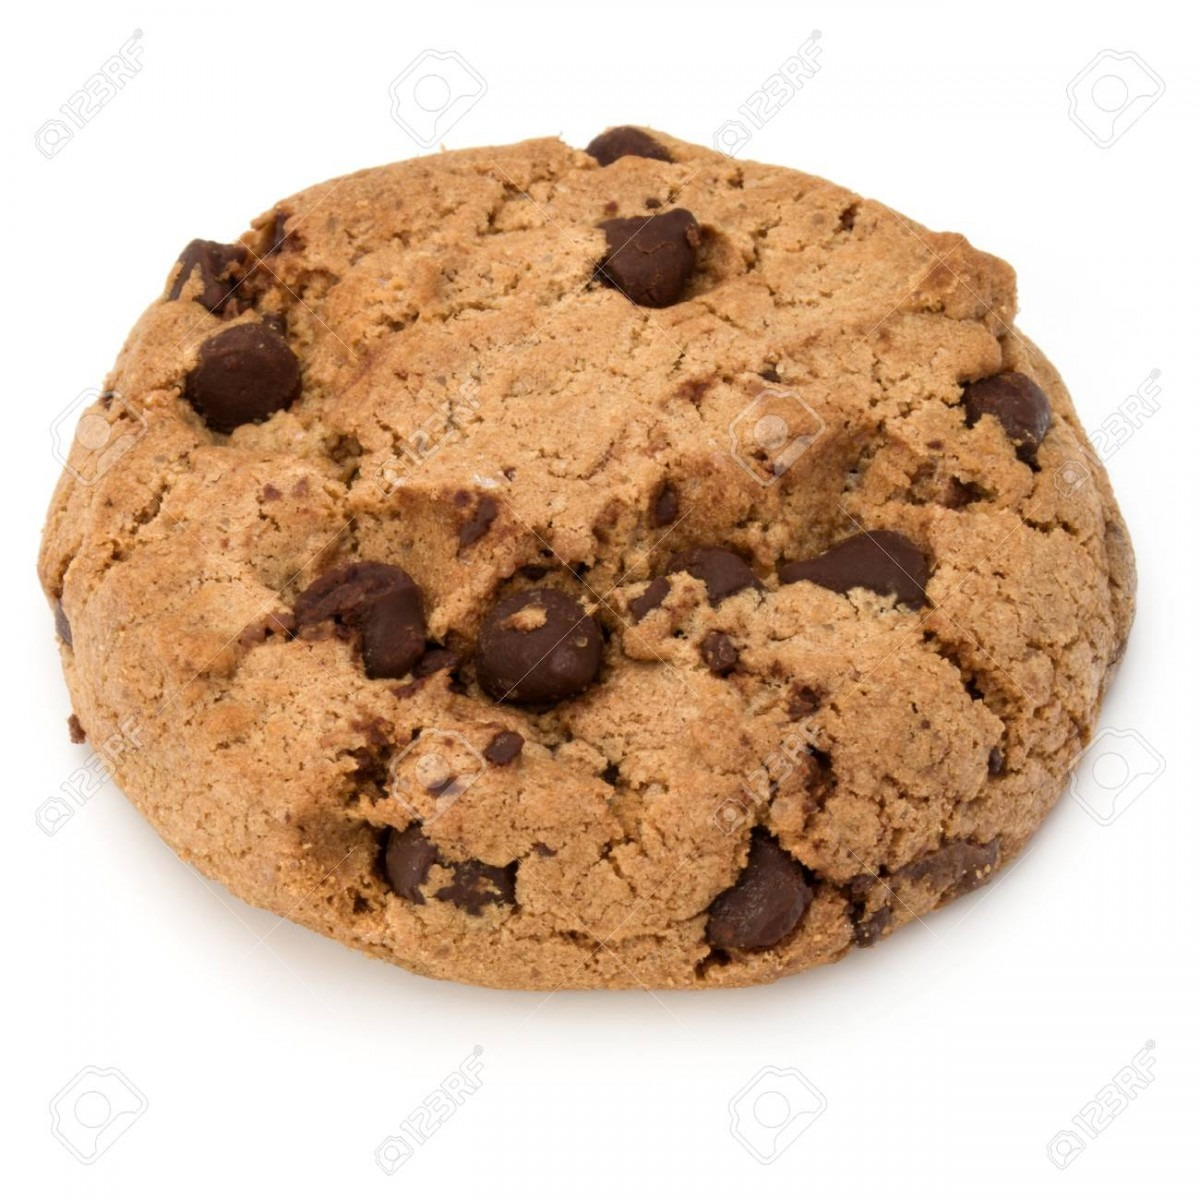 One Chocolate Chip Cookie Isolated On White Background  Sweet